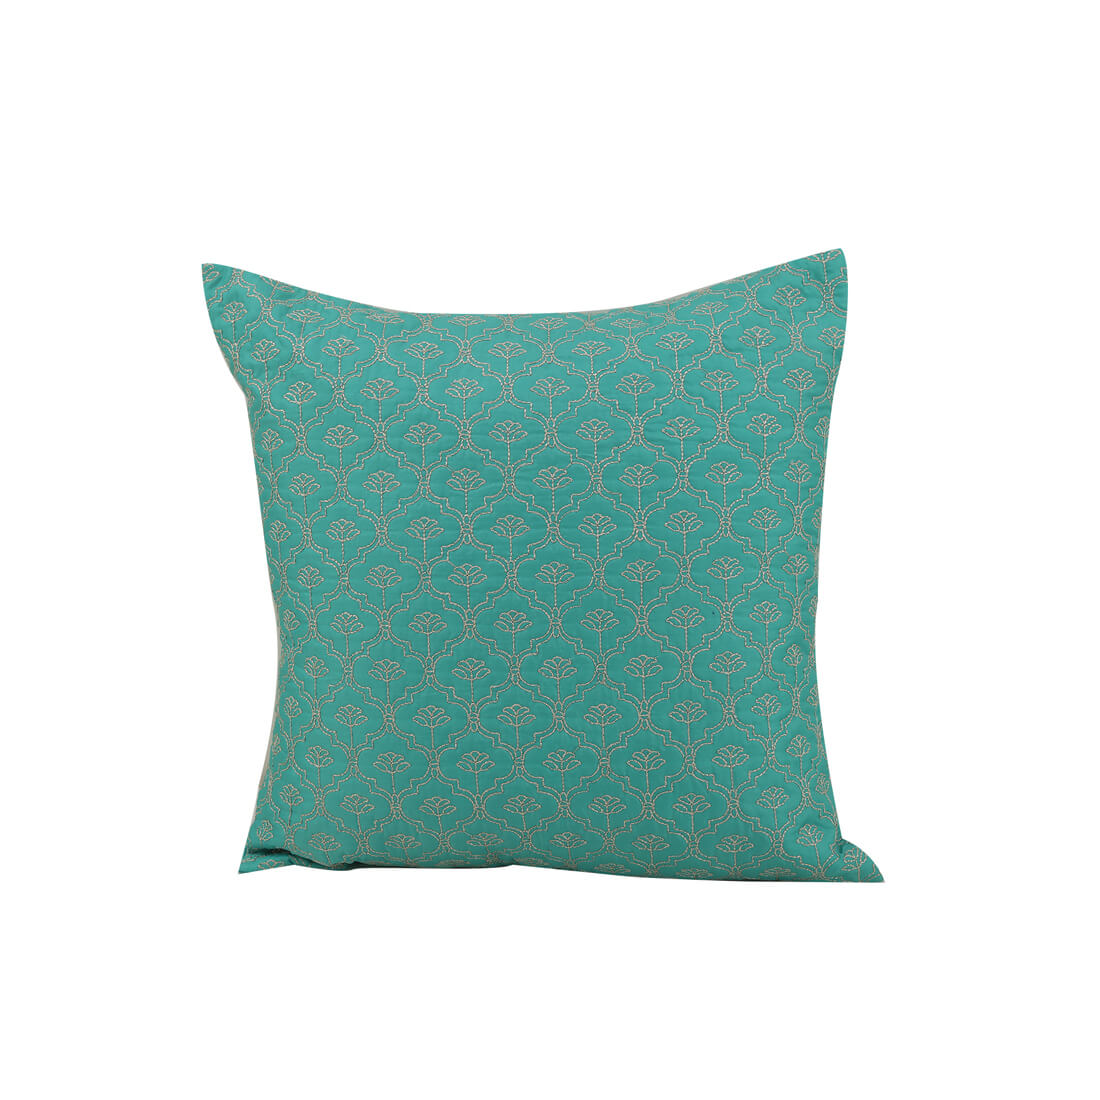 Ogee Polyester Cushion Covers in Teal Colour by Living Essence